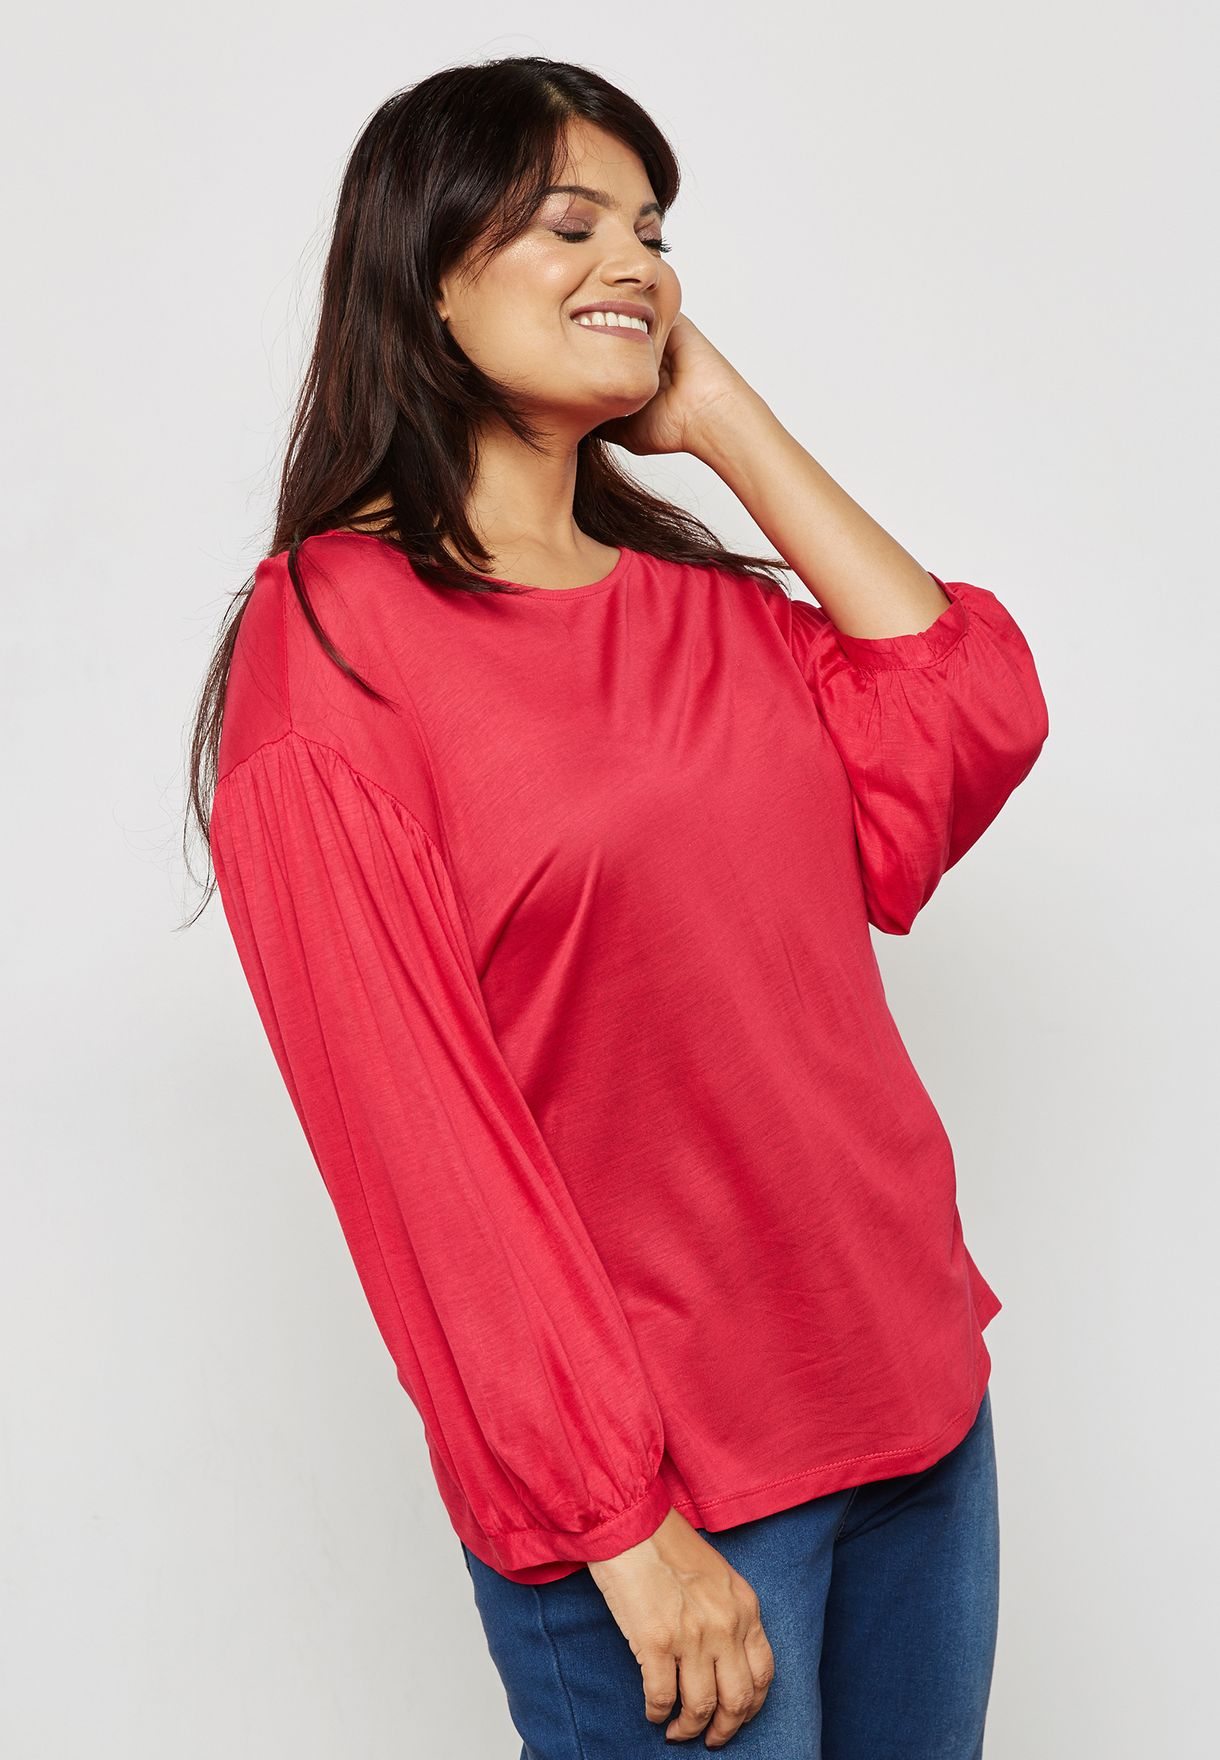 Cuffed Sleeve T-Shirt